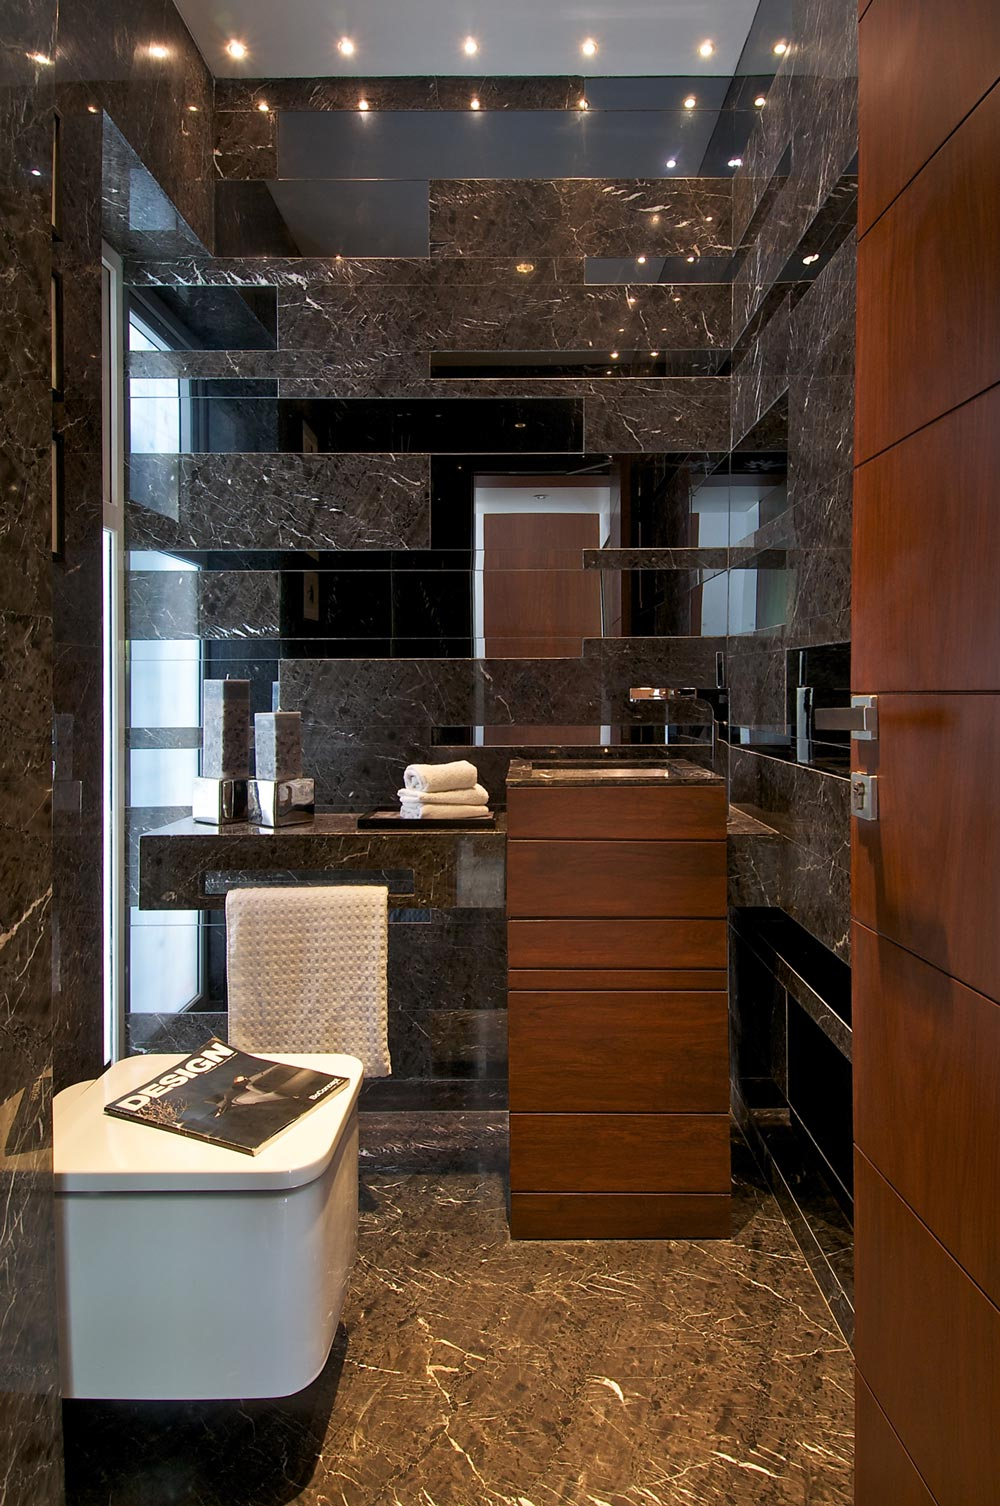 Bathroom, Dinesh Mill Bungalow in Baroda, India by Atelier dnD